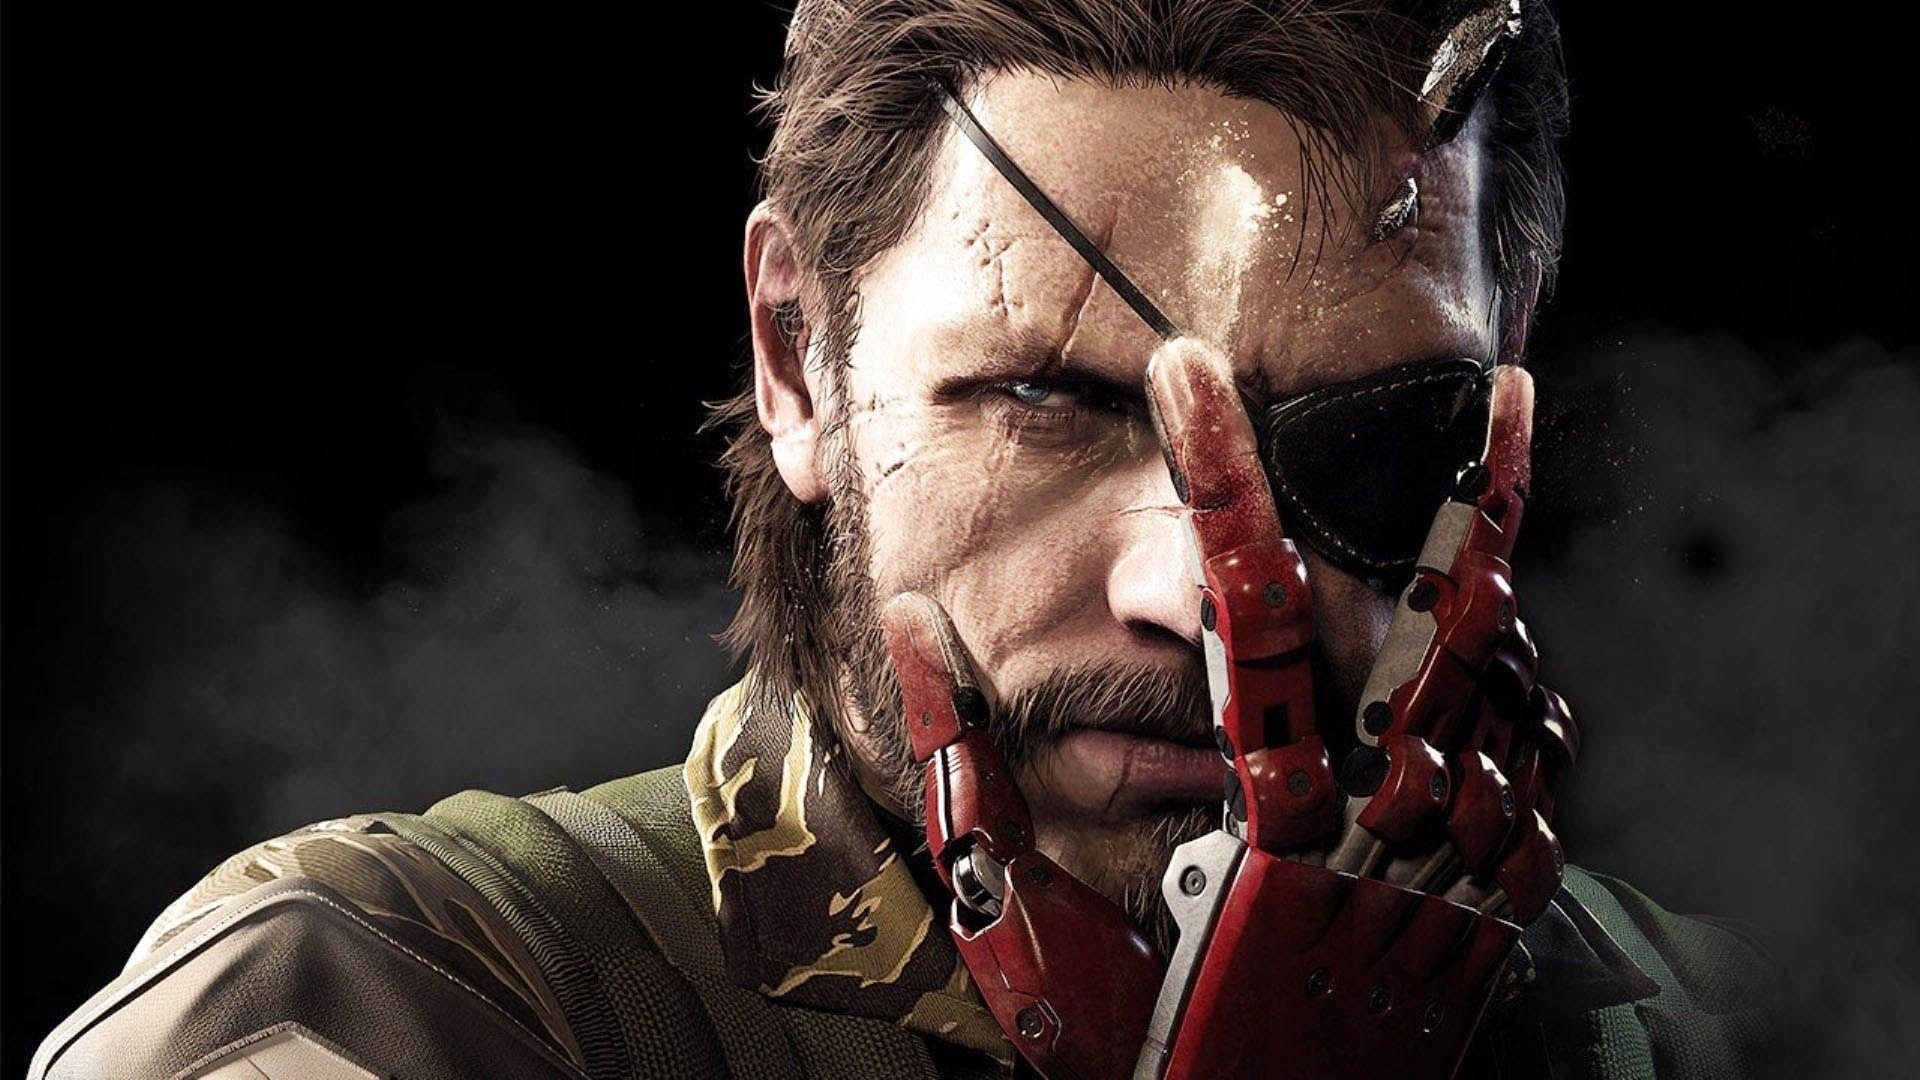 Metal Gear Solid V The Phantom Pain Hd Wallpapers